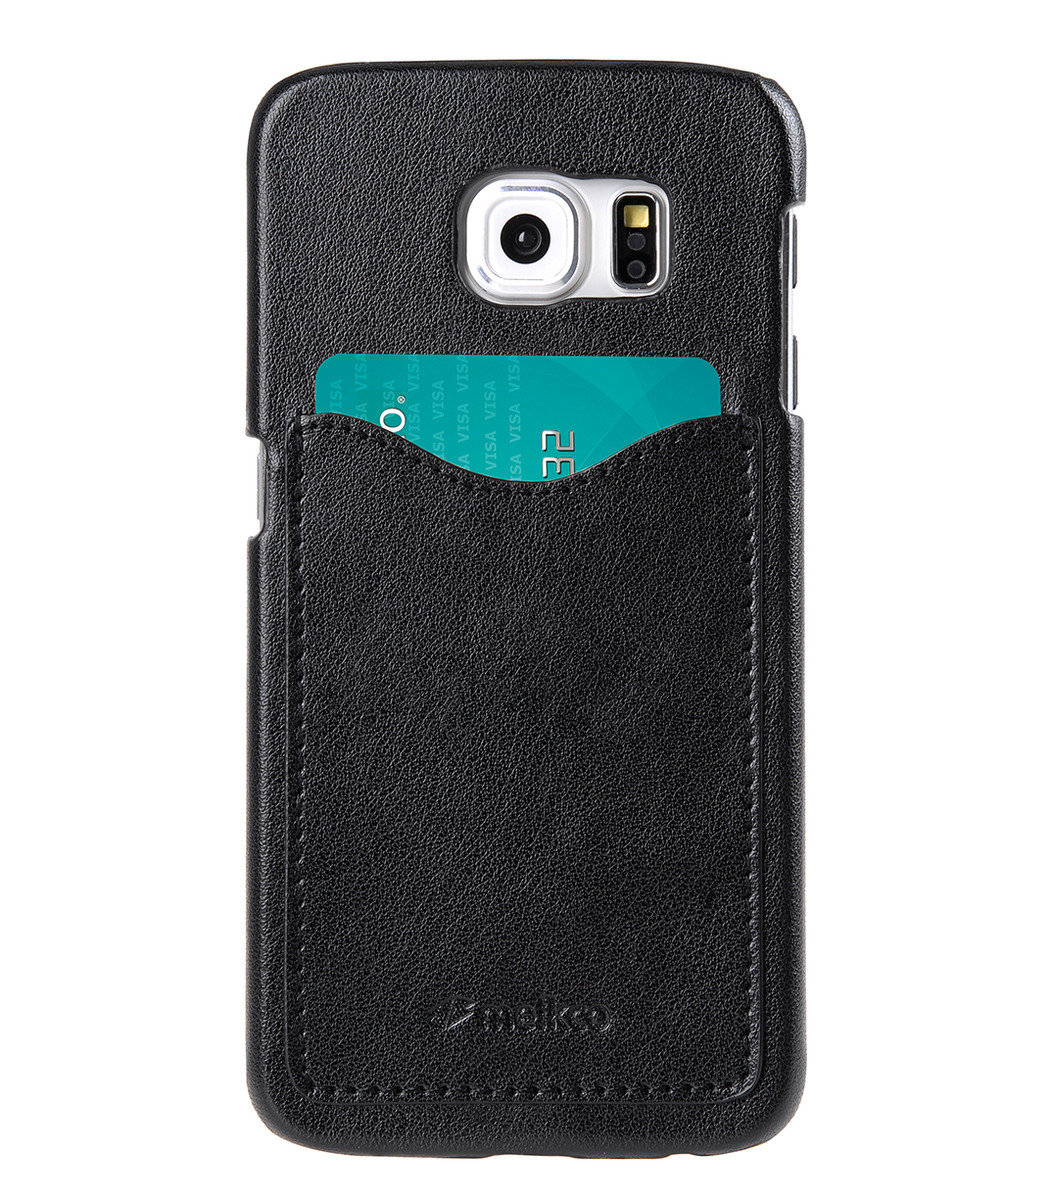 Samsung Galaxy S6 Card Slot Back Cover(ver.2)人造皮手機殼 (黑色)